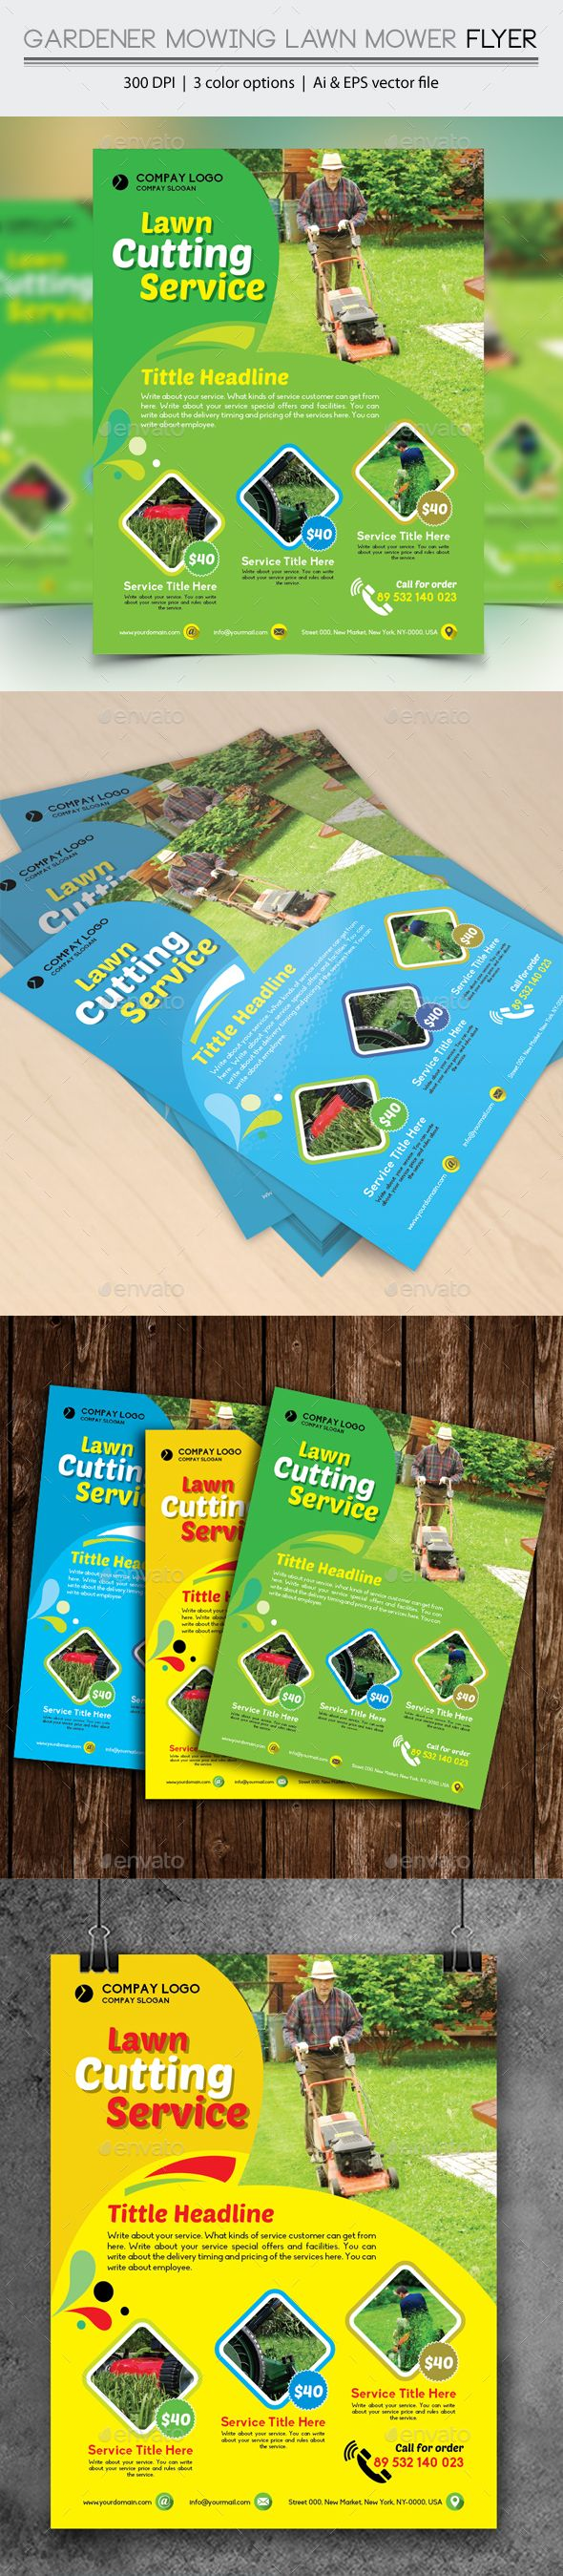 1000 images about service flyer templates gardener mowing lawn mower flyer eps template lawns ad ➝